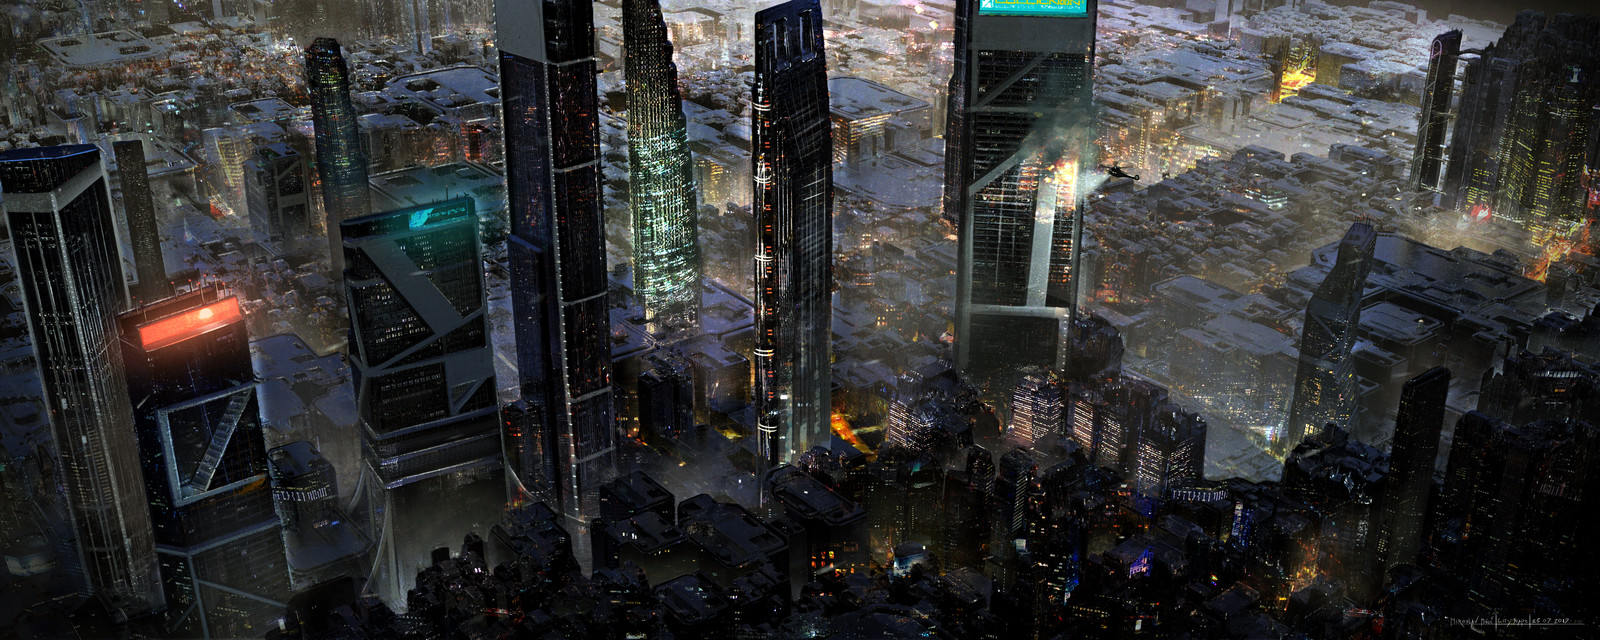 Near Future Dystopian Mega City